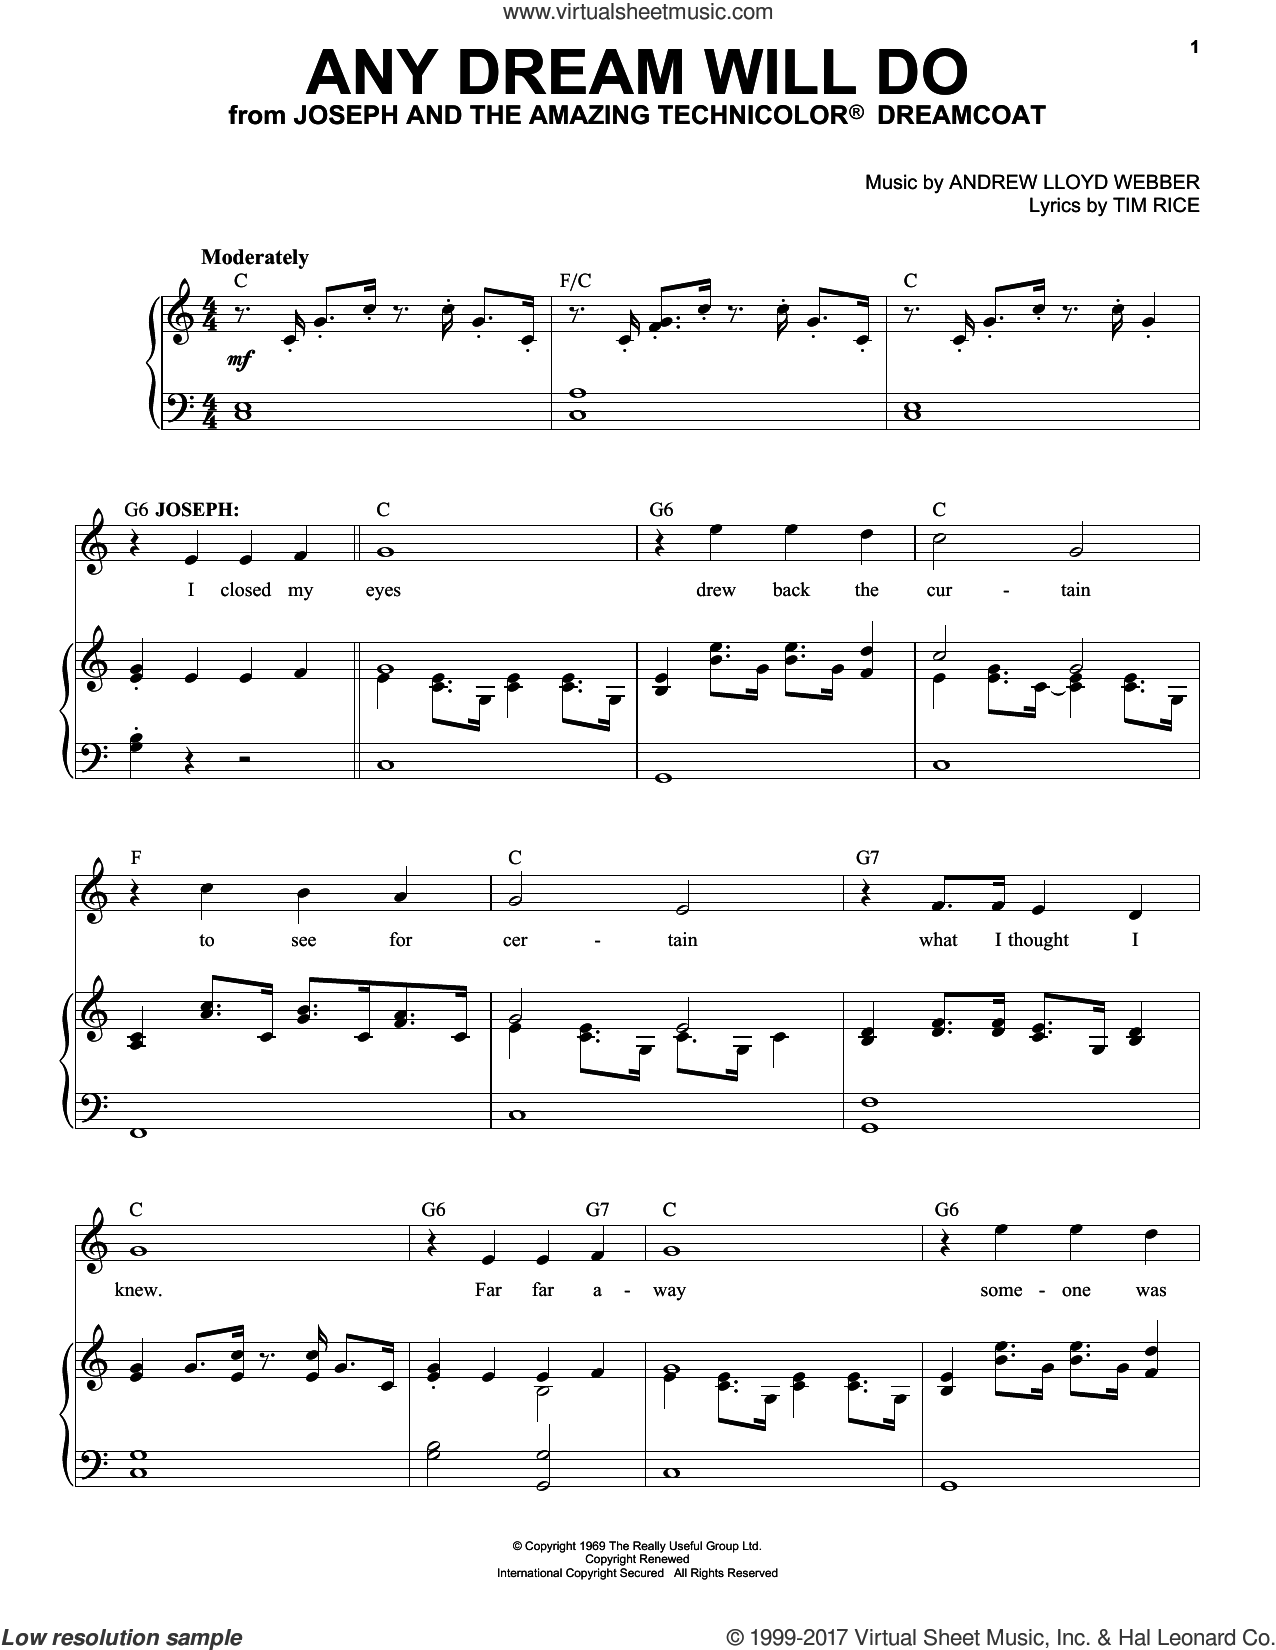 Any Dream Will Do sheet music for voice and piano (High ) by Andrew Lloyd Webber and Tim Rice, intermediate. Score Image Preview.